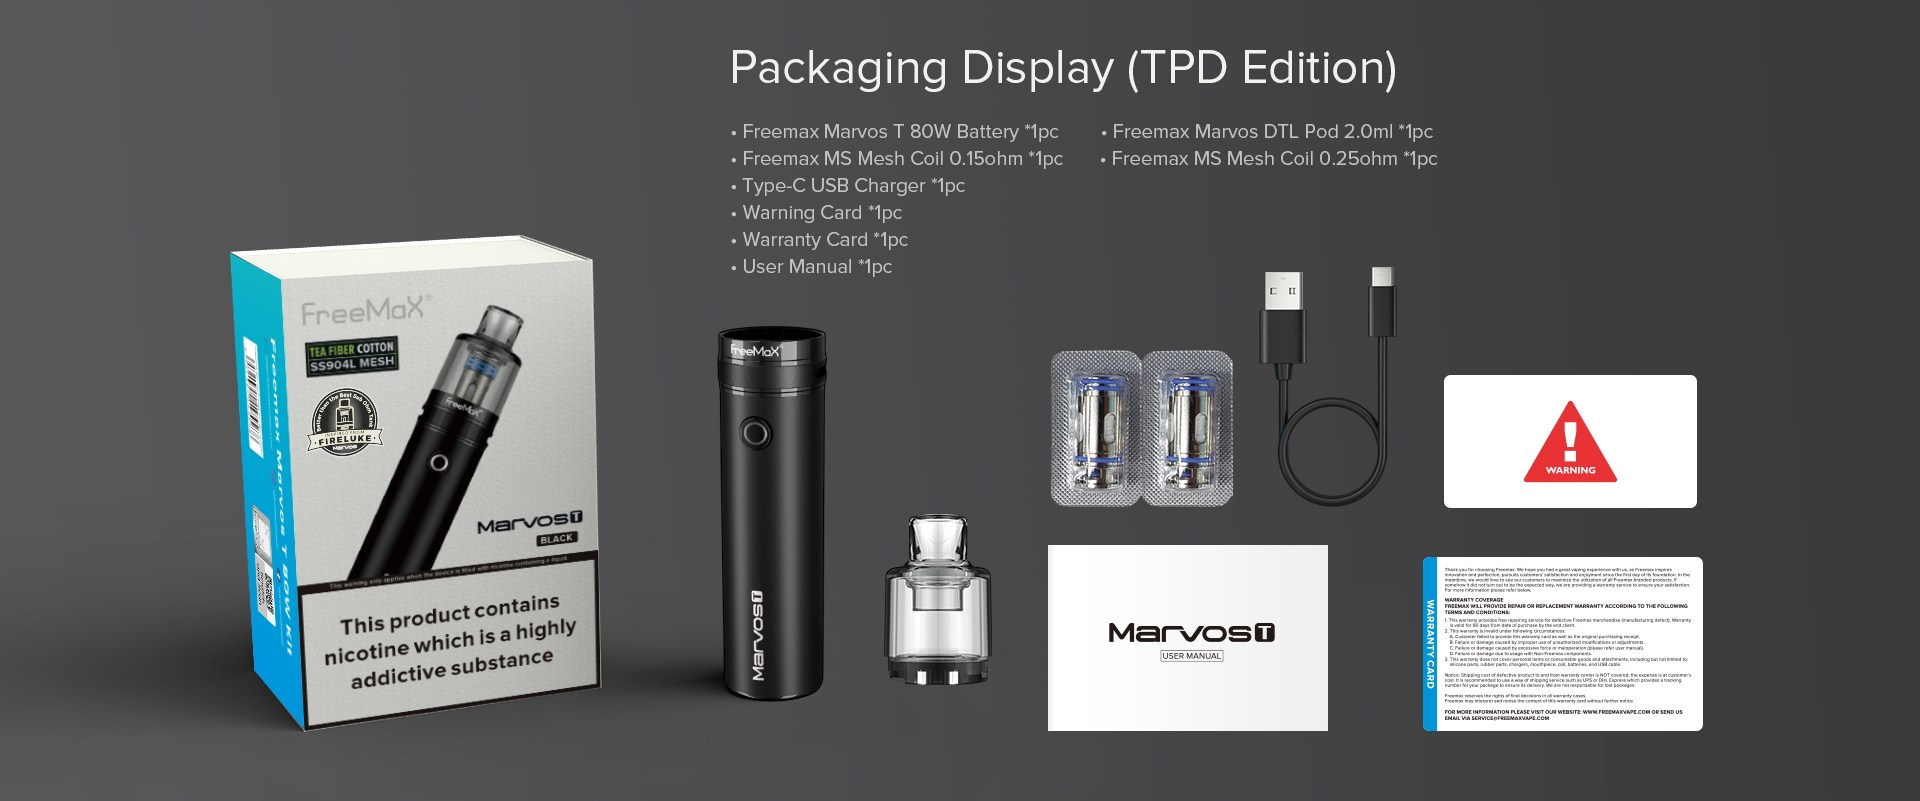 Marvos T 80W Kit - Packaging Display (TPD Edition)